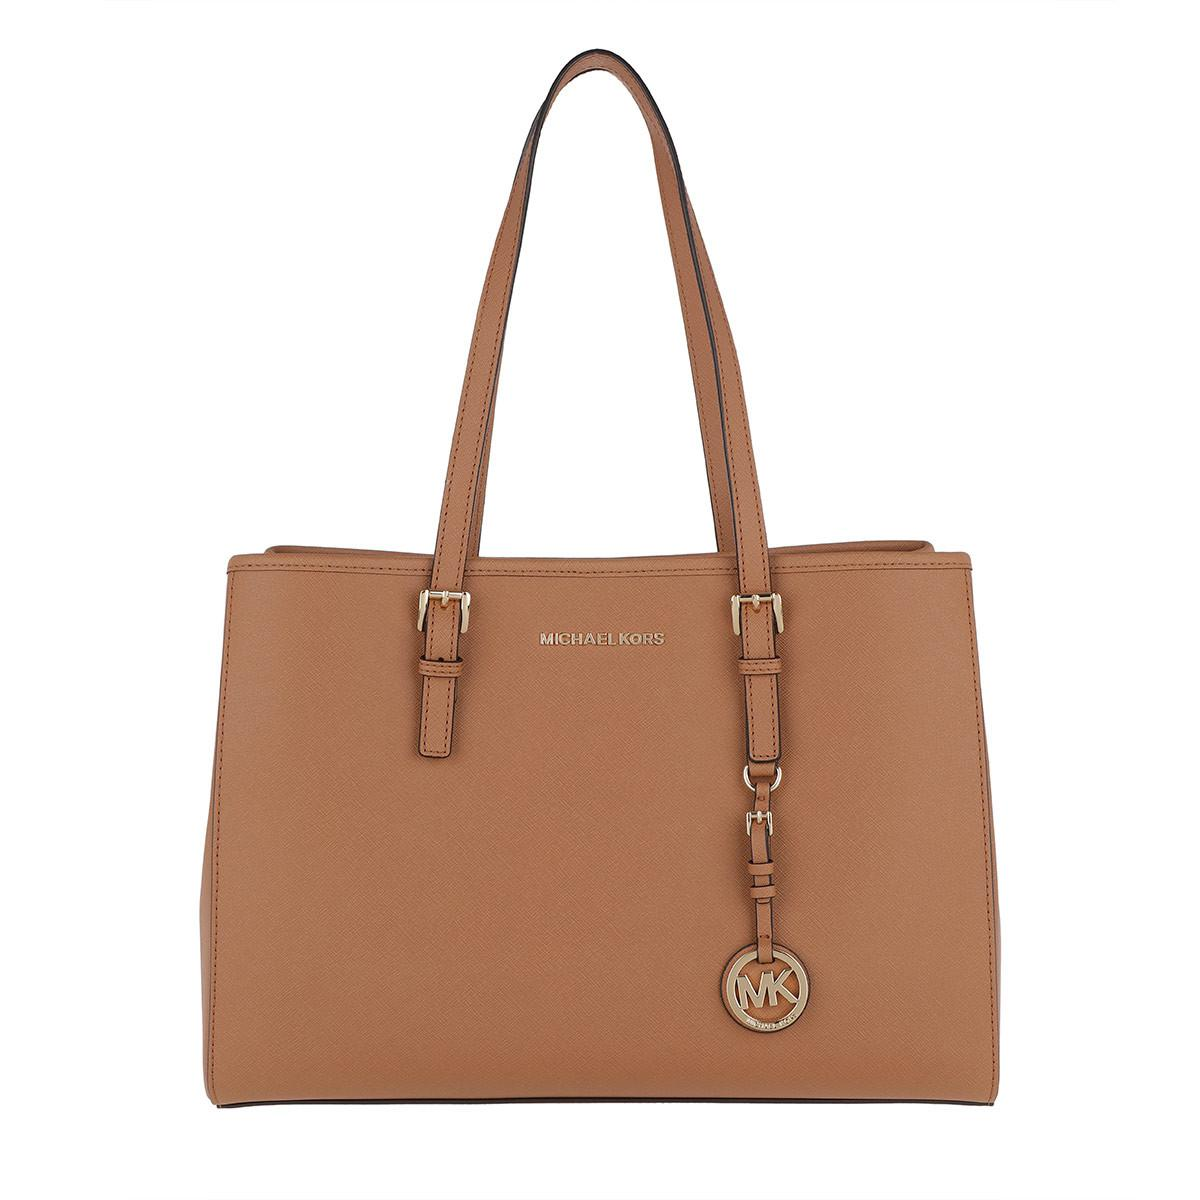 de43f8b12d3c Michael Kors Jet Set Travel Lg Ew Tote Leather Acorn in Brown - Lyst